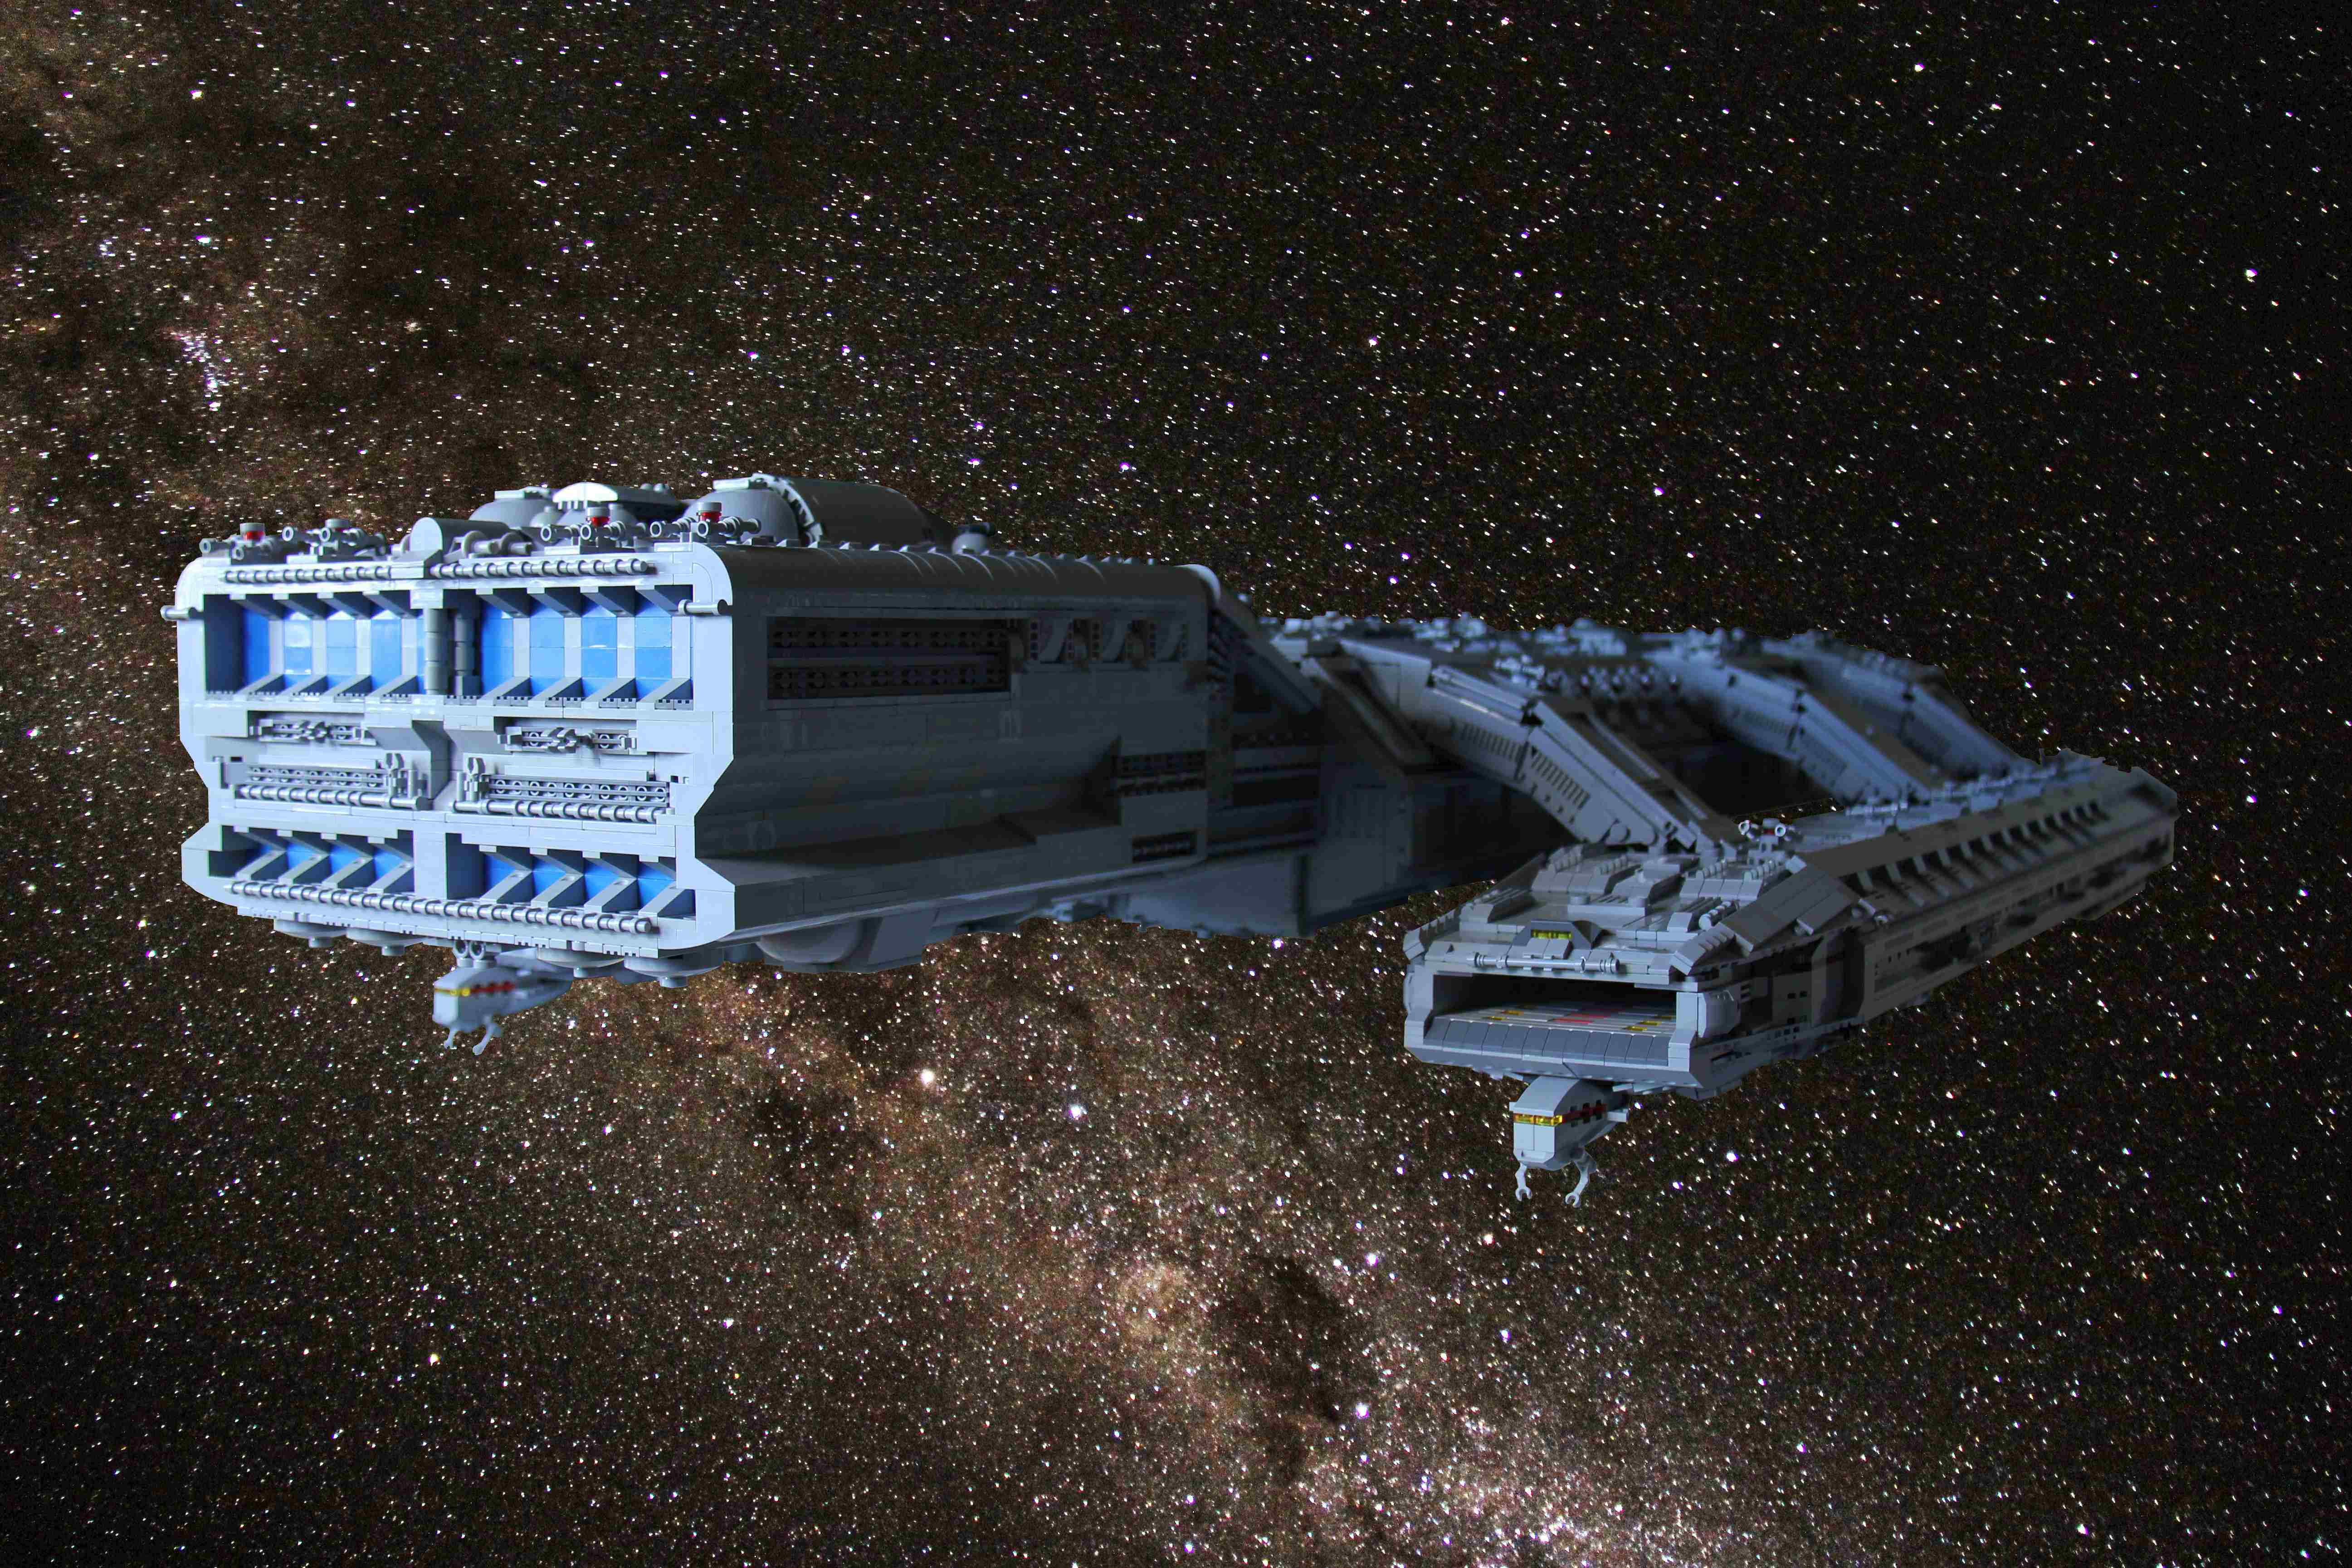 galactica_and_milky_way_016.jpg